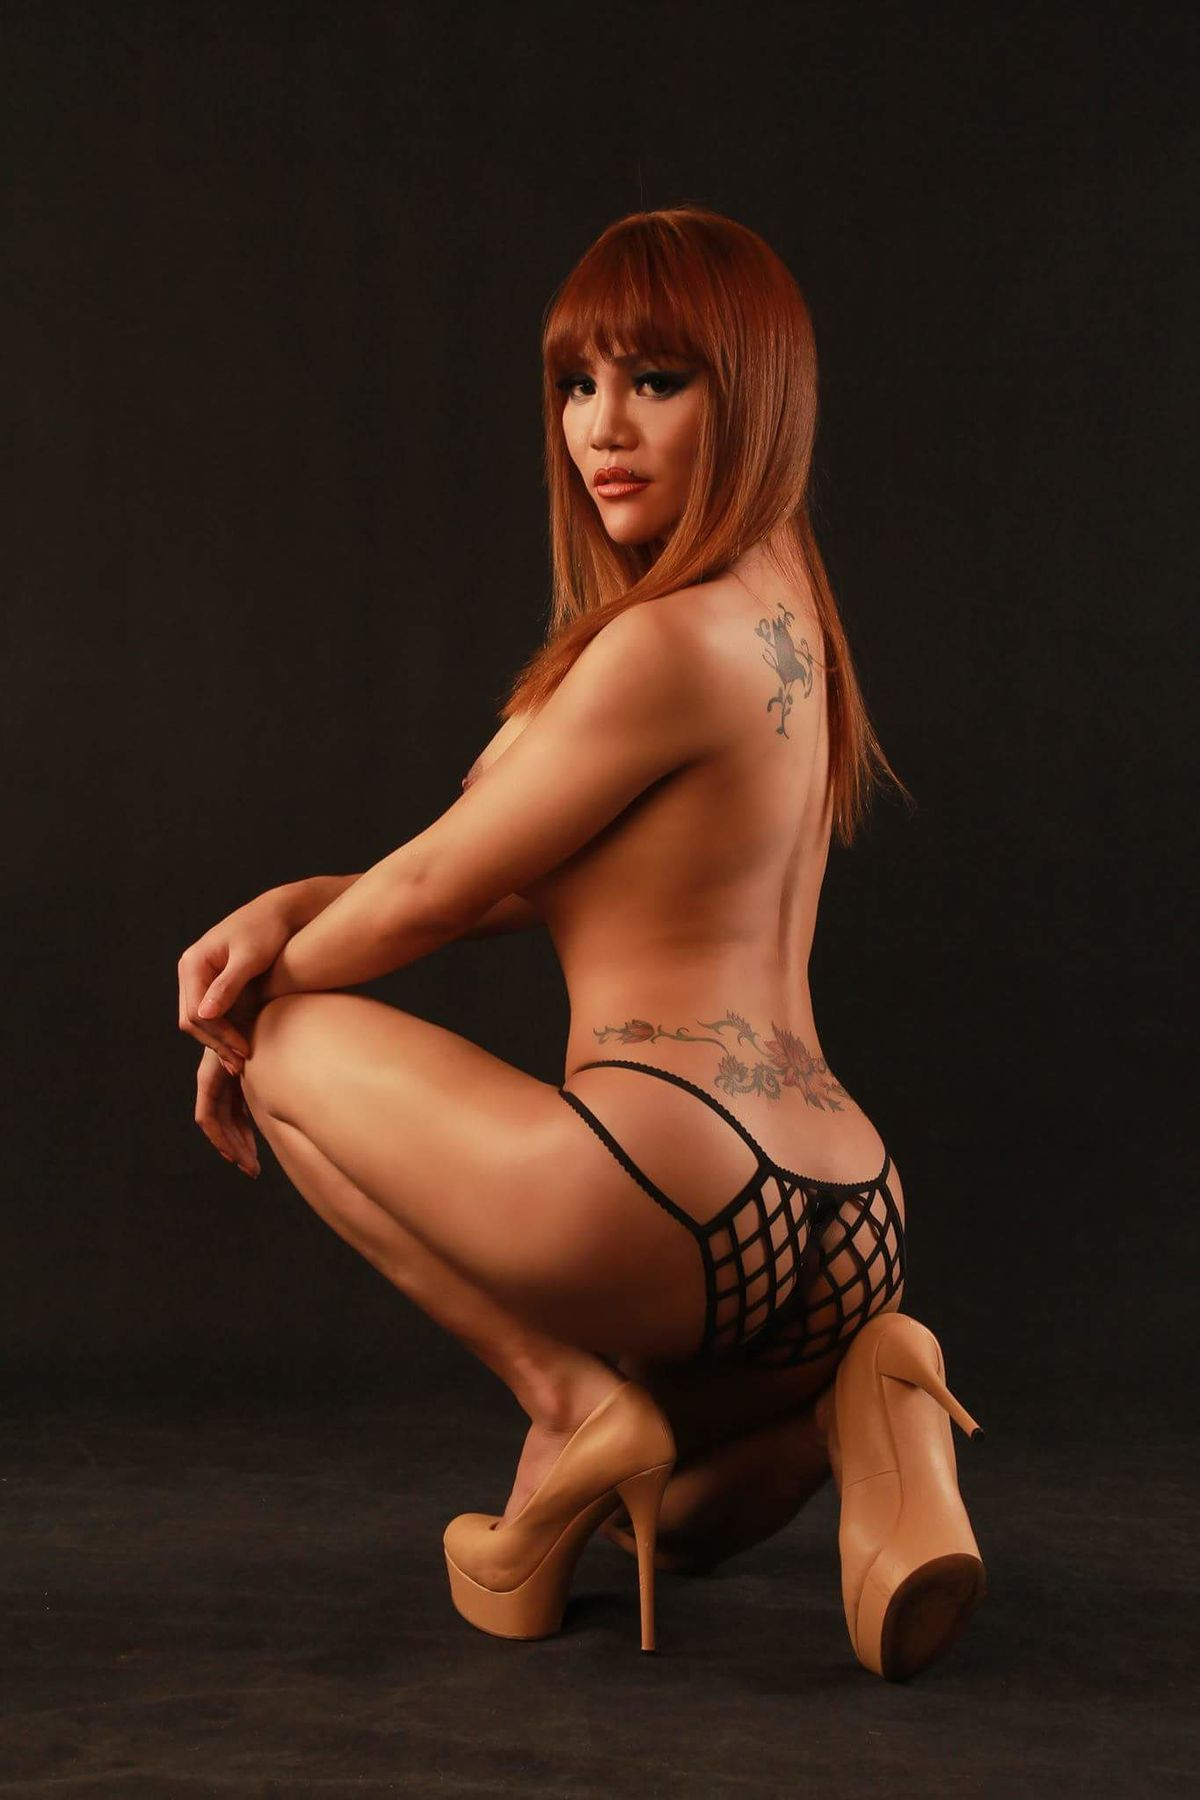 Ts Escort Chanel , Shemale Escort Agency Ny-5907